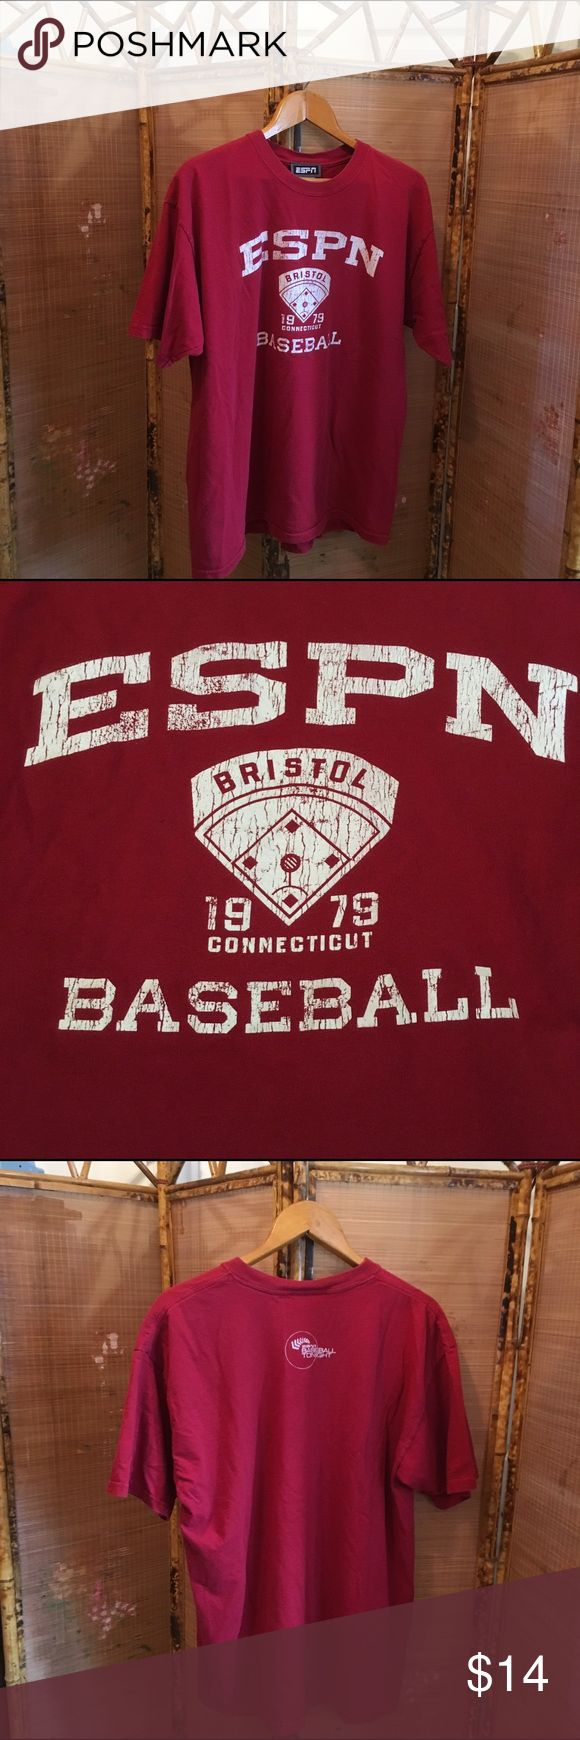 """Classic ESPN Baseball Tonight tee shirt GUC Classic ESPN 100% cotton distressed red tee shirt. Front has """"ESPN"""", """"Bristol Connecticut"""", a printed baseball diamond, """"1979"""", and """"Baseball"""" all written in white. Back is red with """"Baseball Tonight"""" logo in white. All items come from a smoke free home. Measurements available upon request. All questions are welcome. ESPN Shirts Tees - Short Sleeve"""